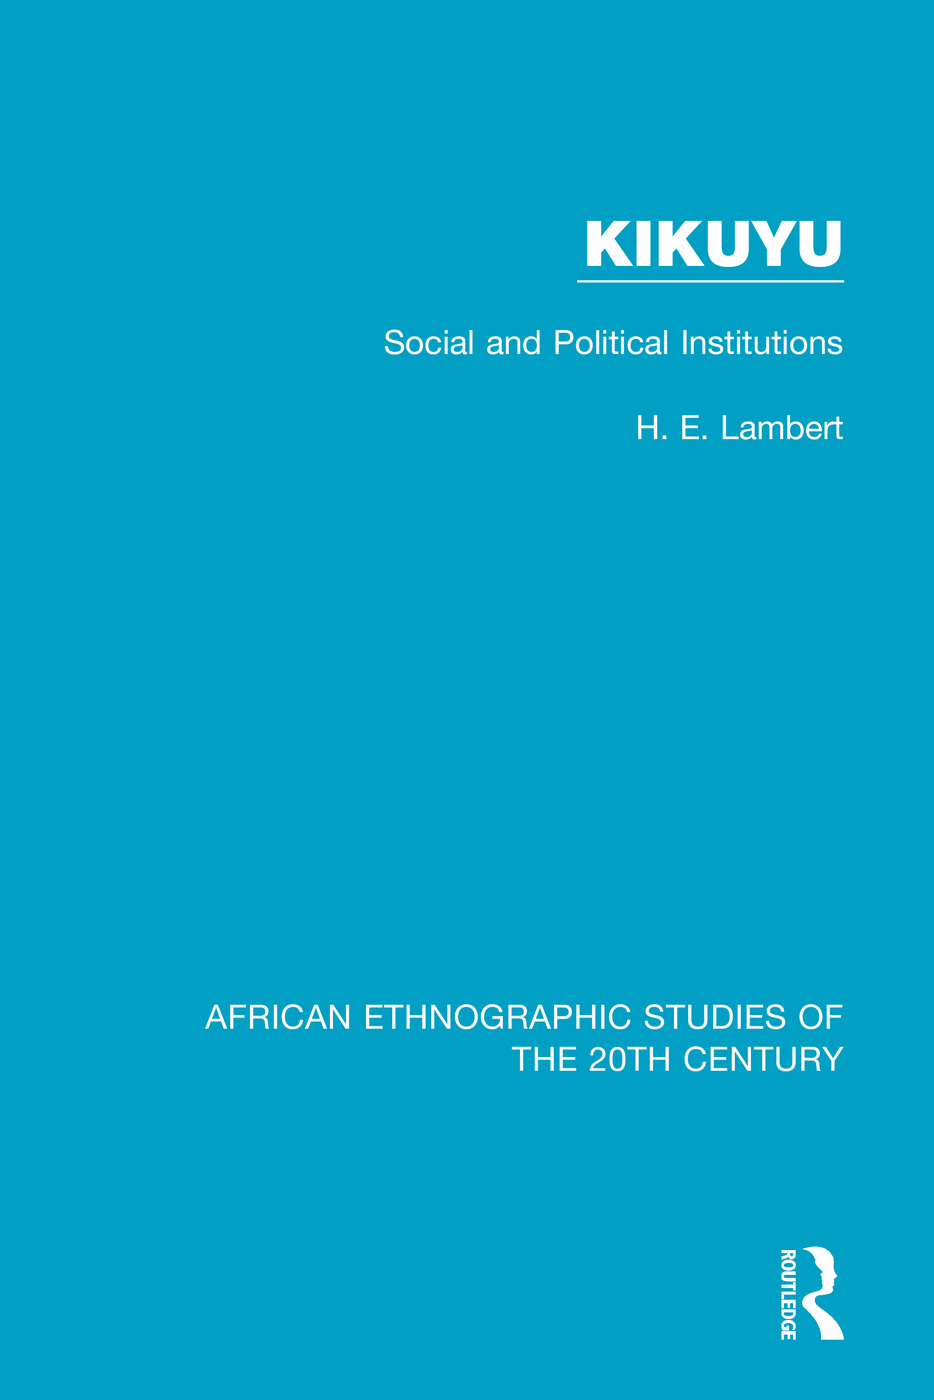 Kikuyu: Social and Political Institutions book cover